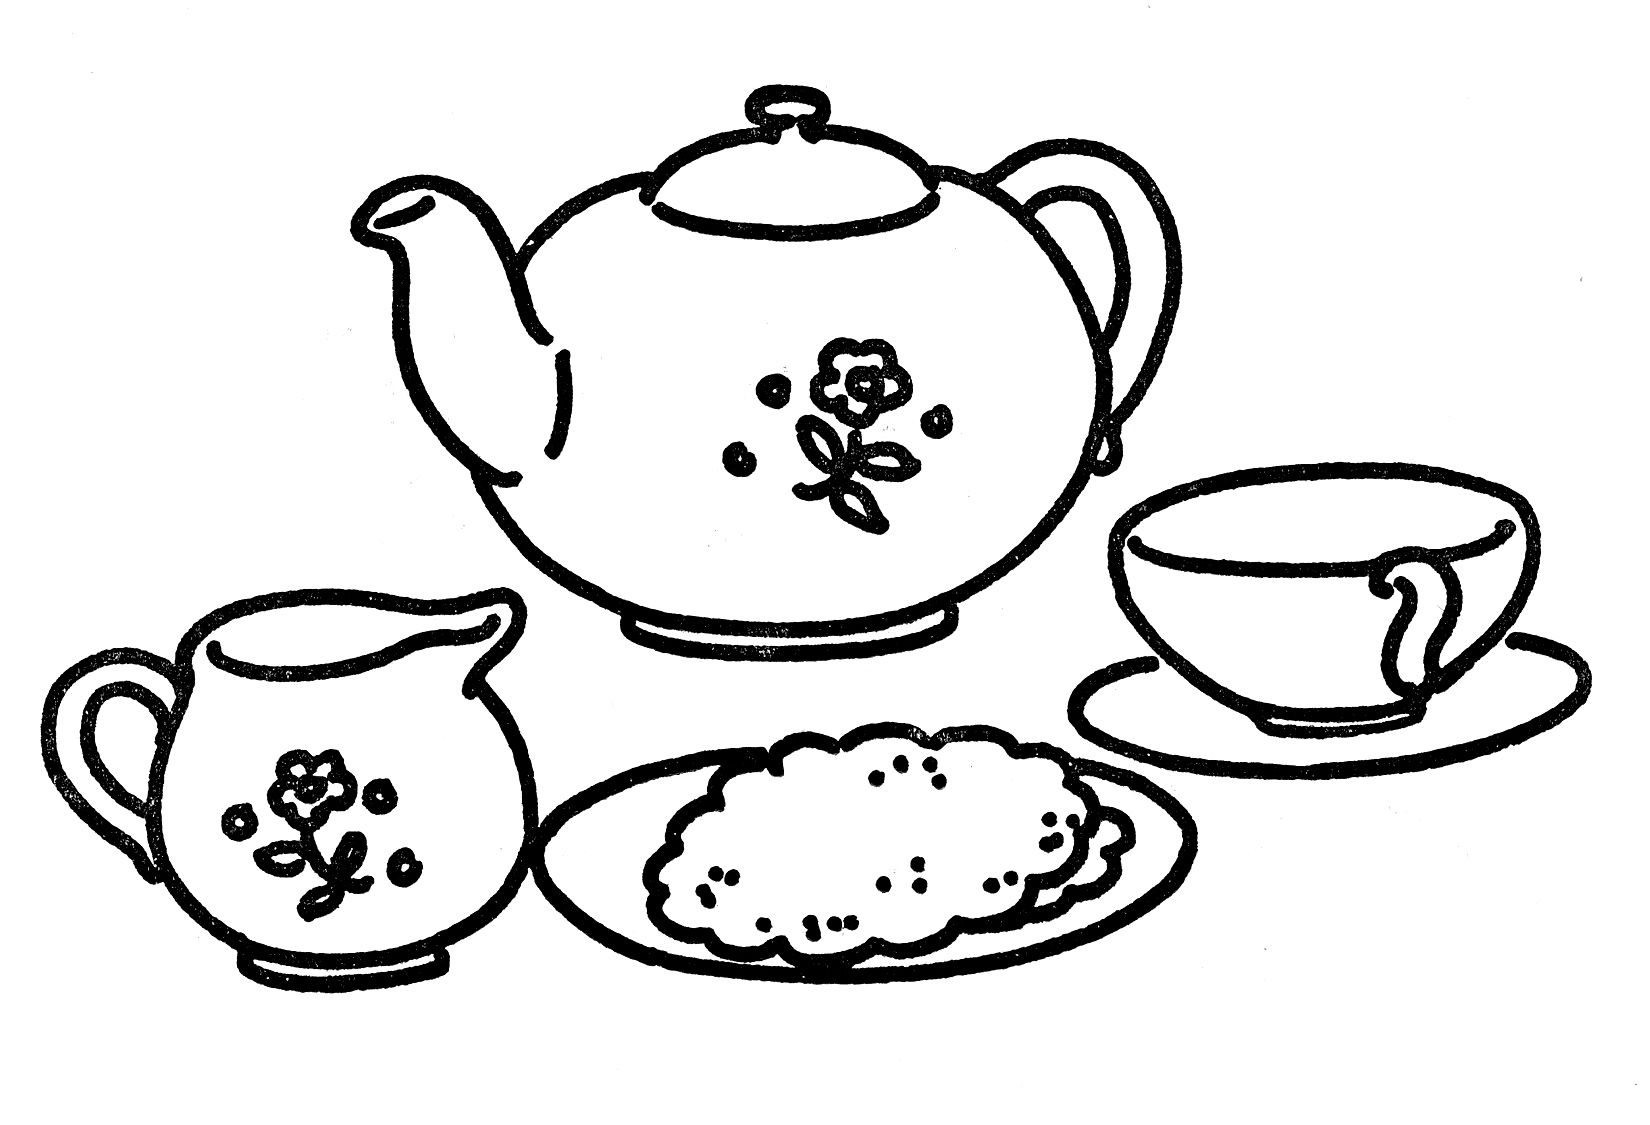 6 Vintage Tea Set Clipart Graphics Fairy Coloring Pages Tea Sets Vintage